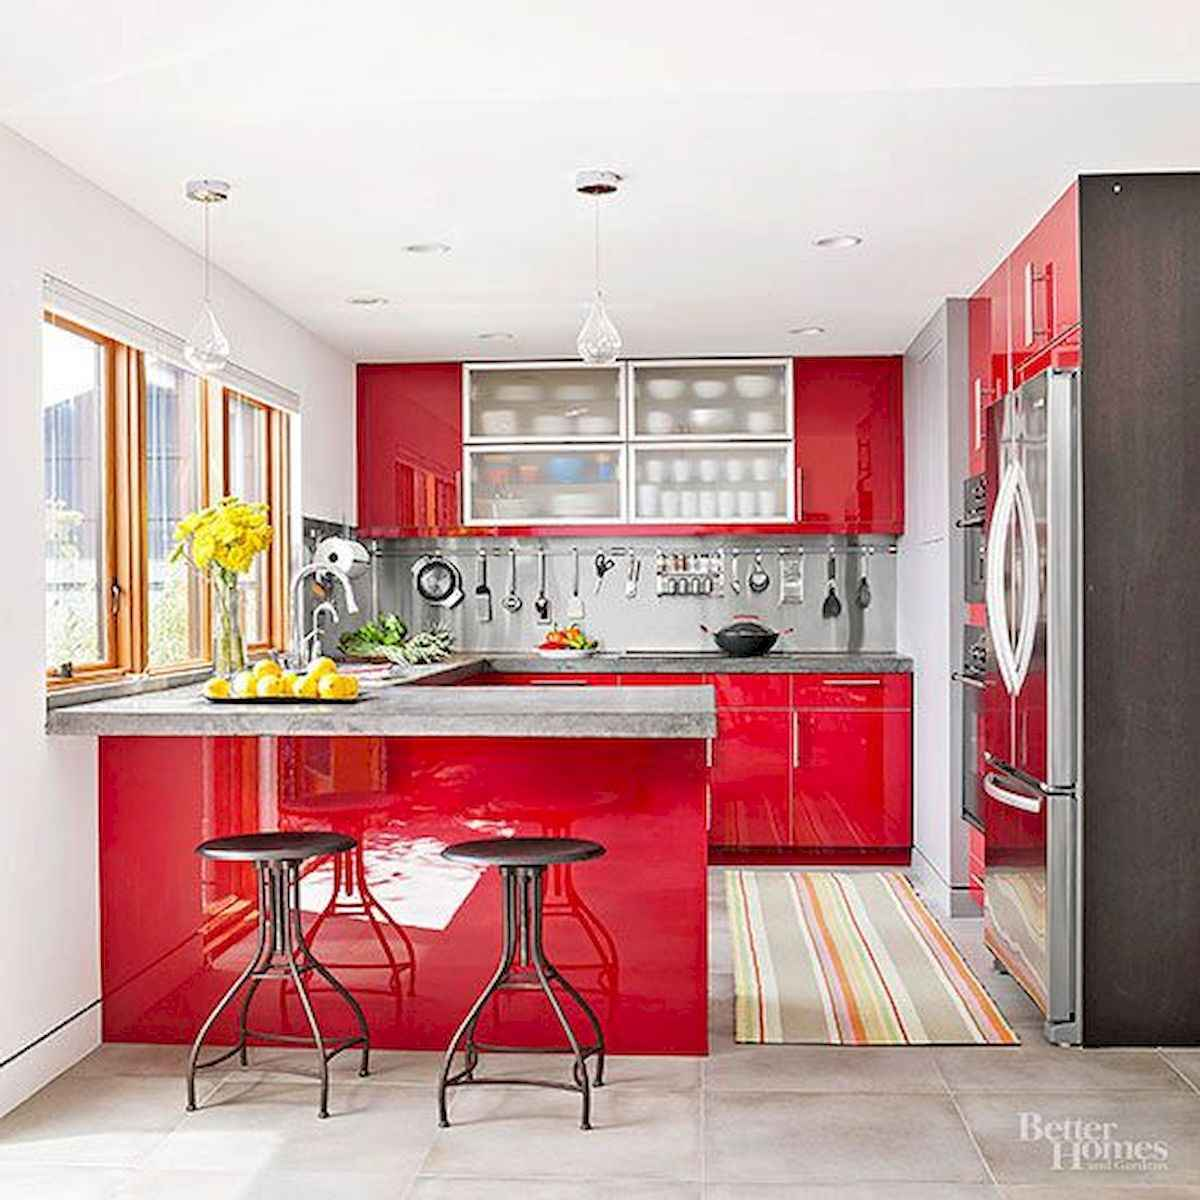 80+ Favorite Colorful Kitchen Decor Ideas And Remodel for Summer Project (38)